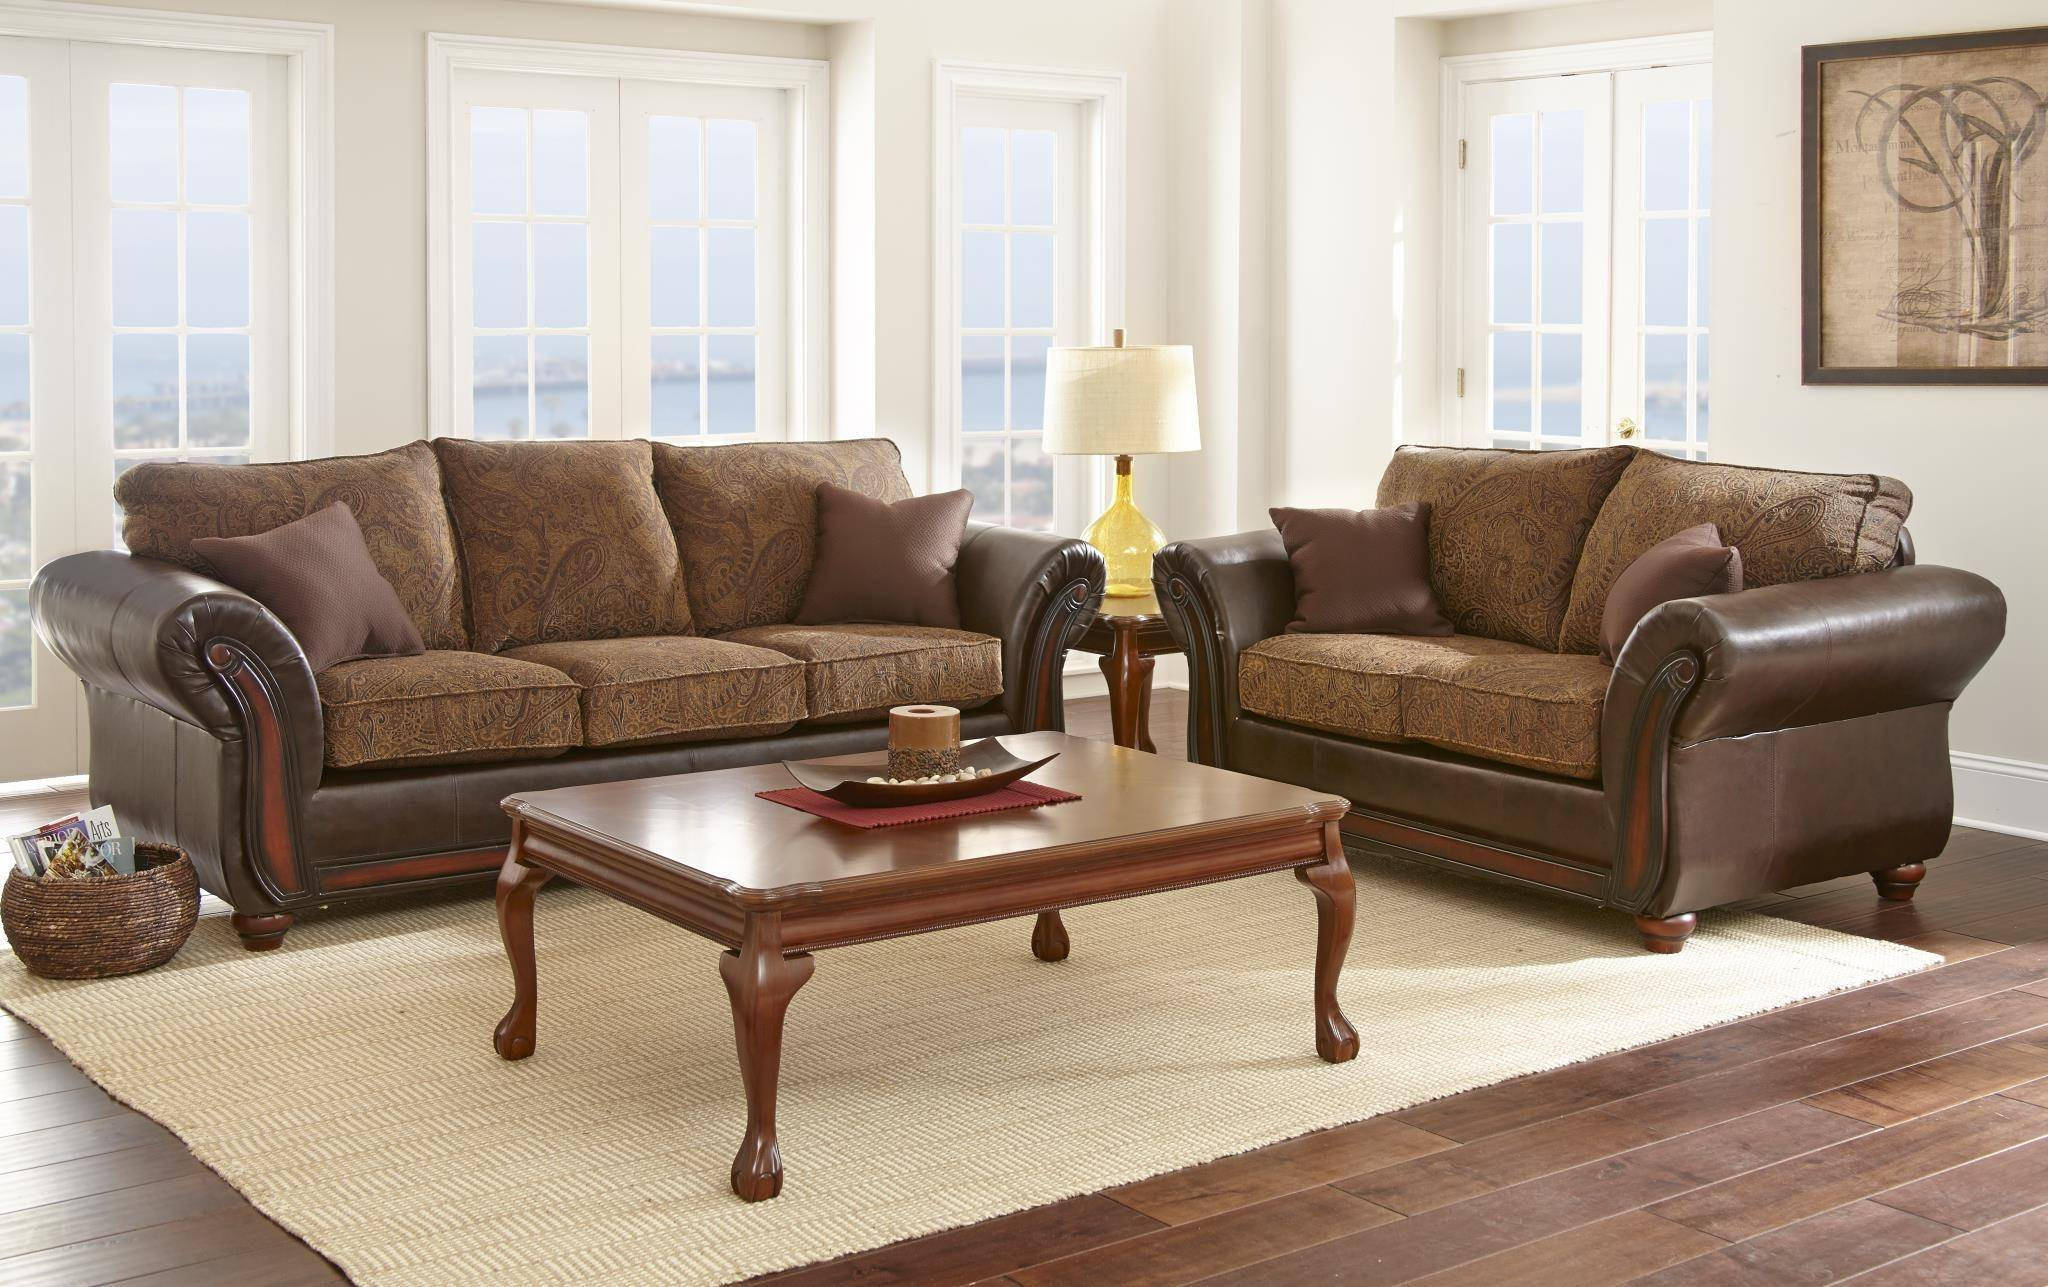 Myco Furniture Brigam Classic Dark Brown Leather Fabric Living inside 14 Some of the Coolest Initiatives of How to Craft Leather Living Room Sets